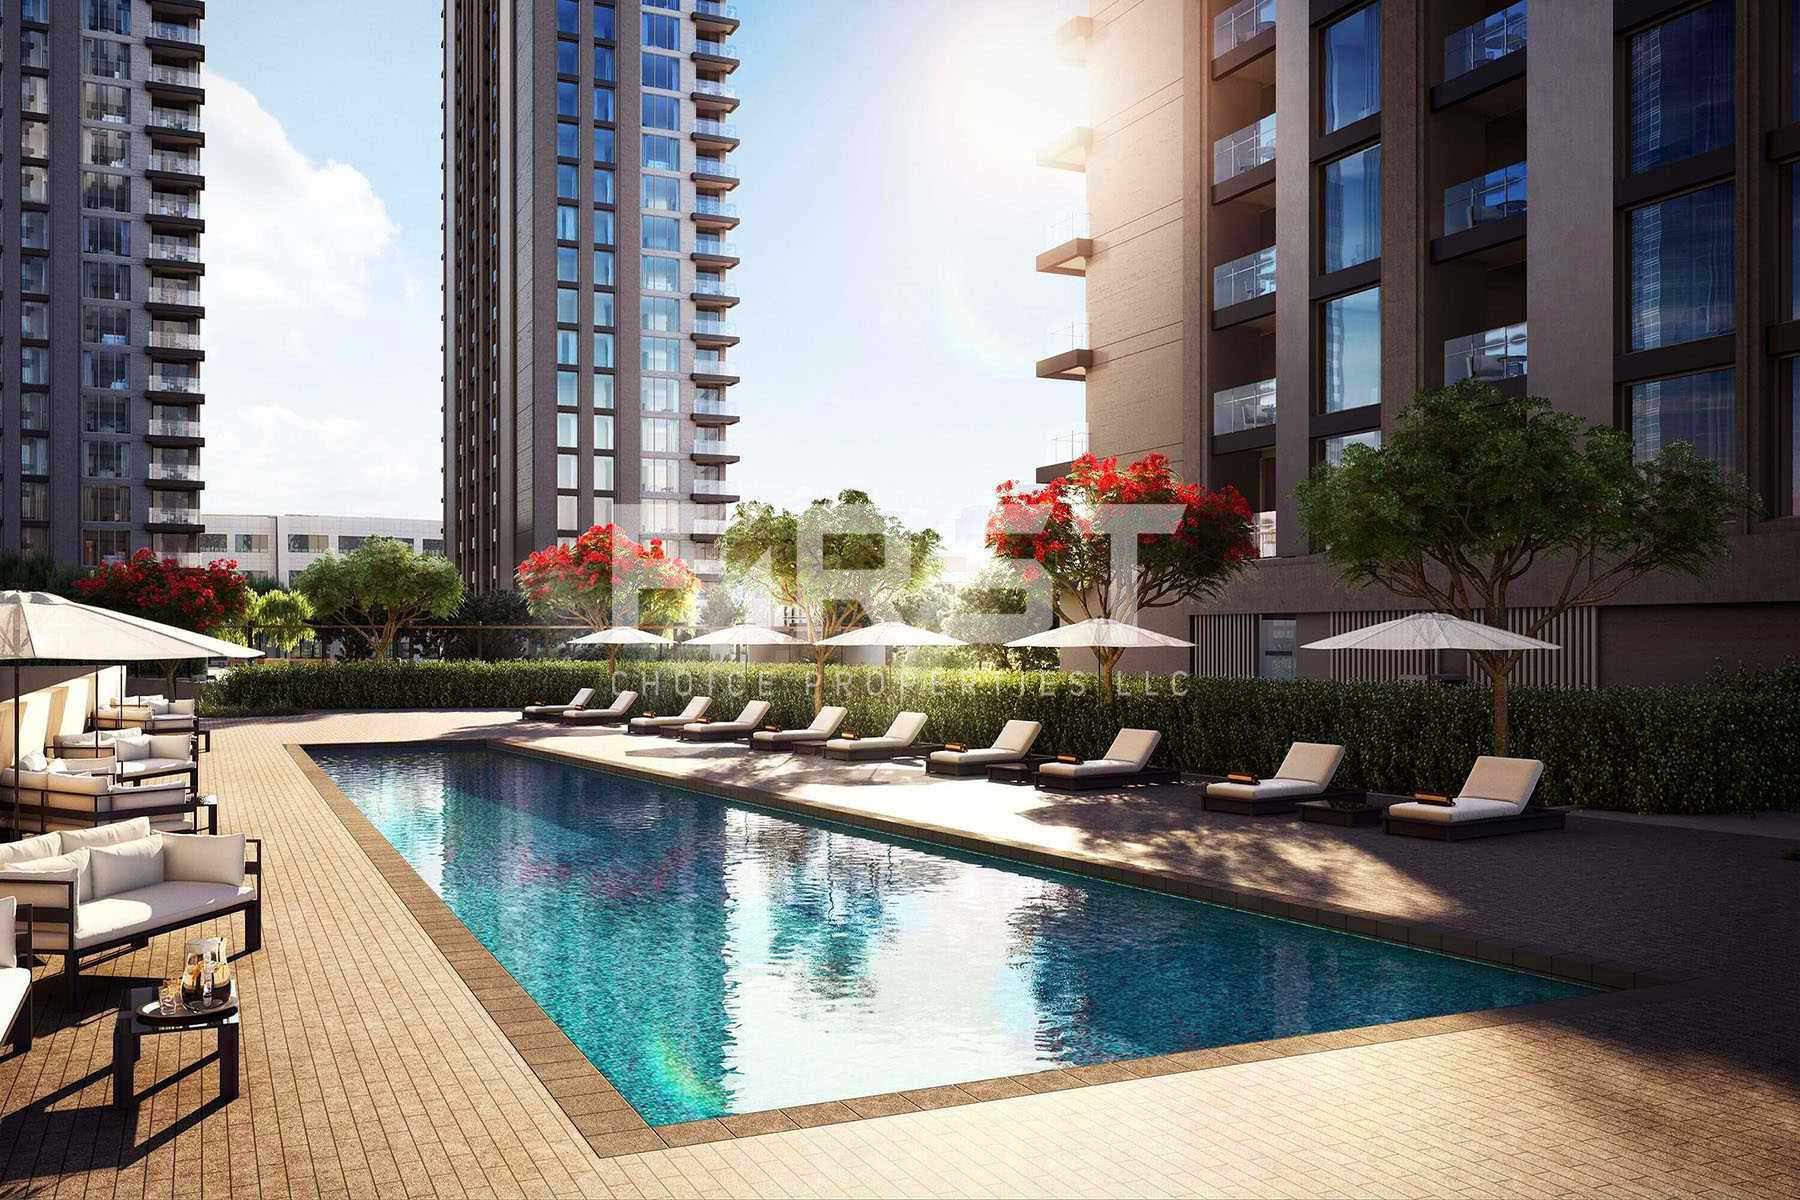 Studio,1 Bedroom, 2 Bedroom, 3 Bedroom,Apartment in The Bridges,Shams Abu Dhabi,Al Reem Island- Abu Dhabi-UAE (9).jpg